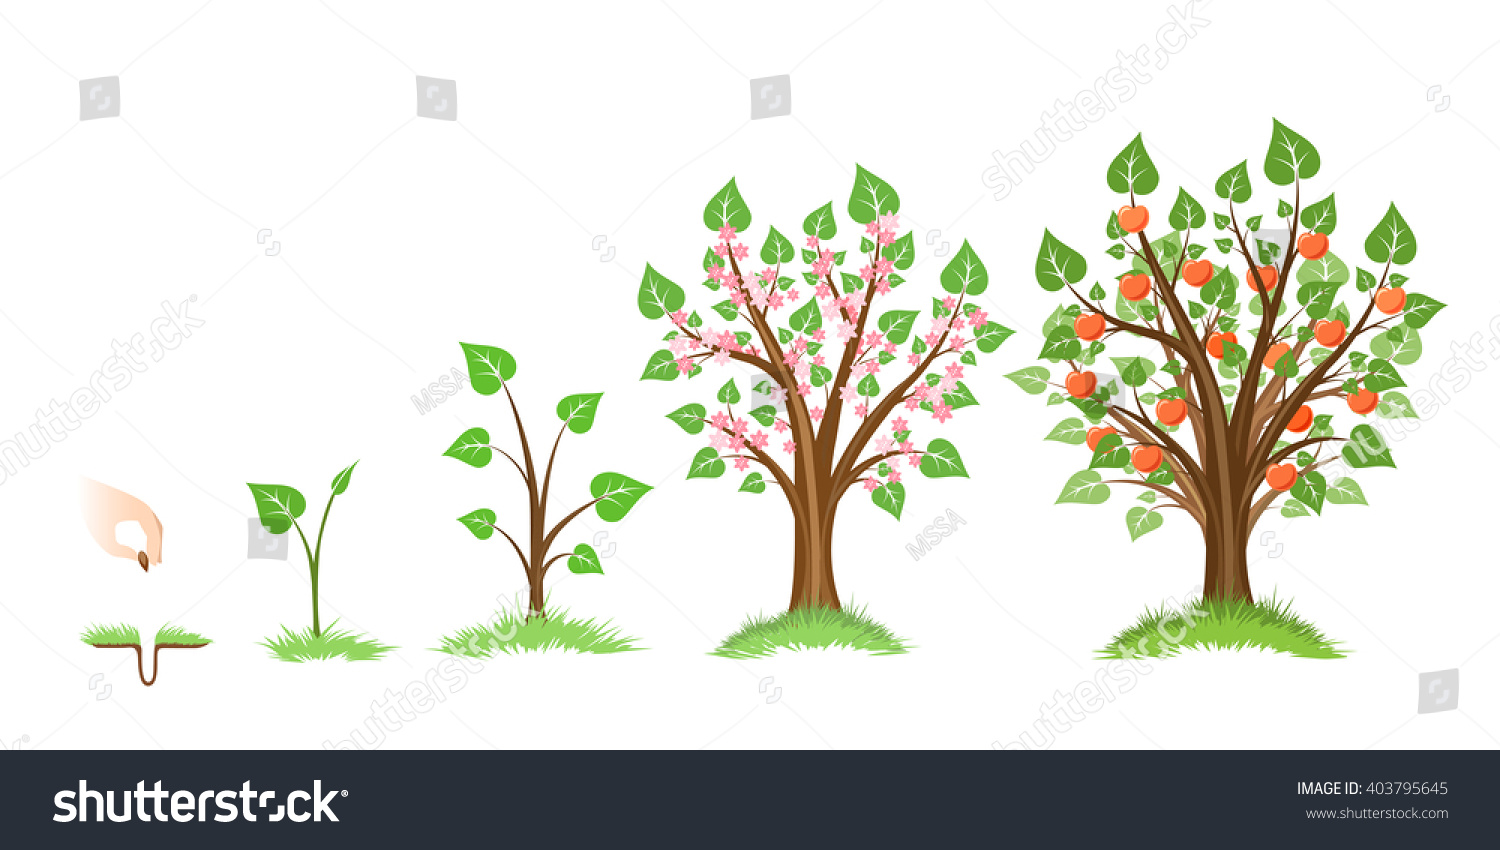 Apple Tree Growth Cycle Plant Cycle Stock Vector